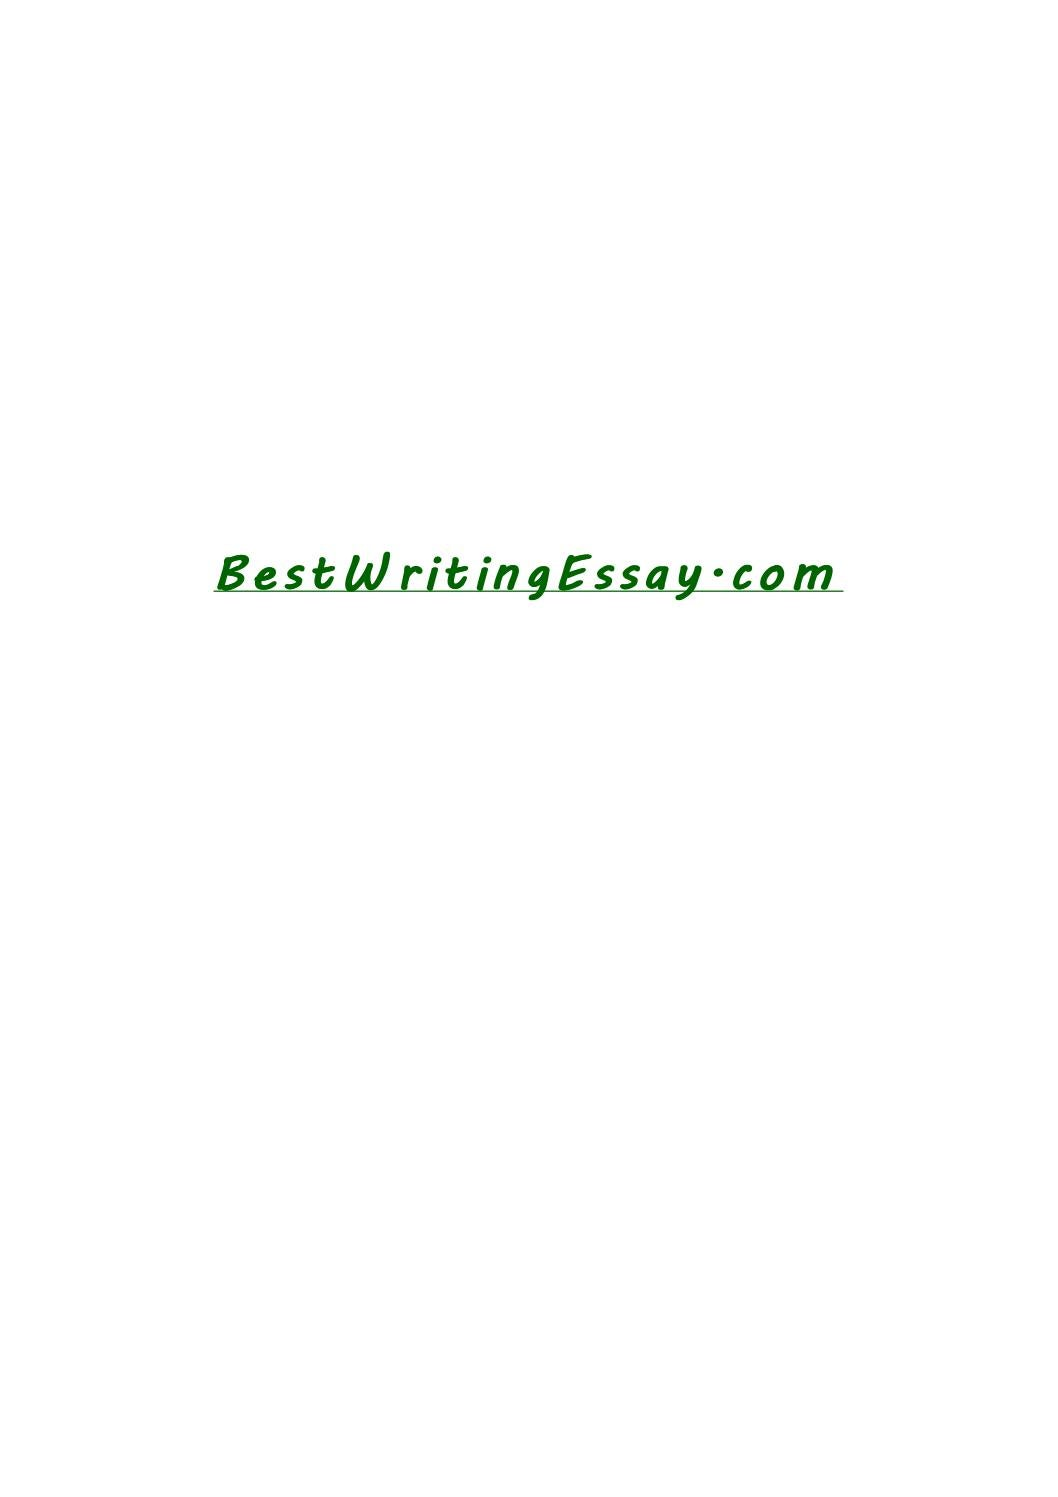 Custom personal statement editor services usa